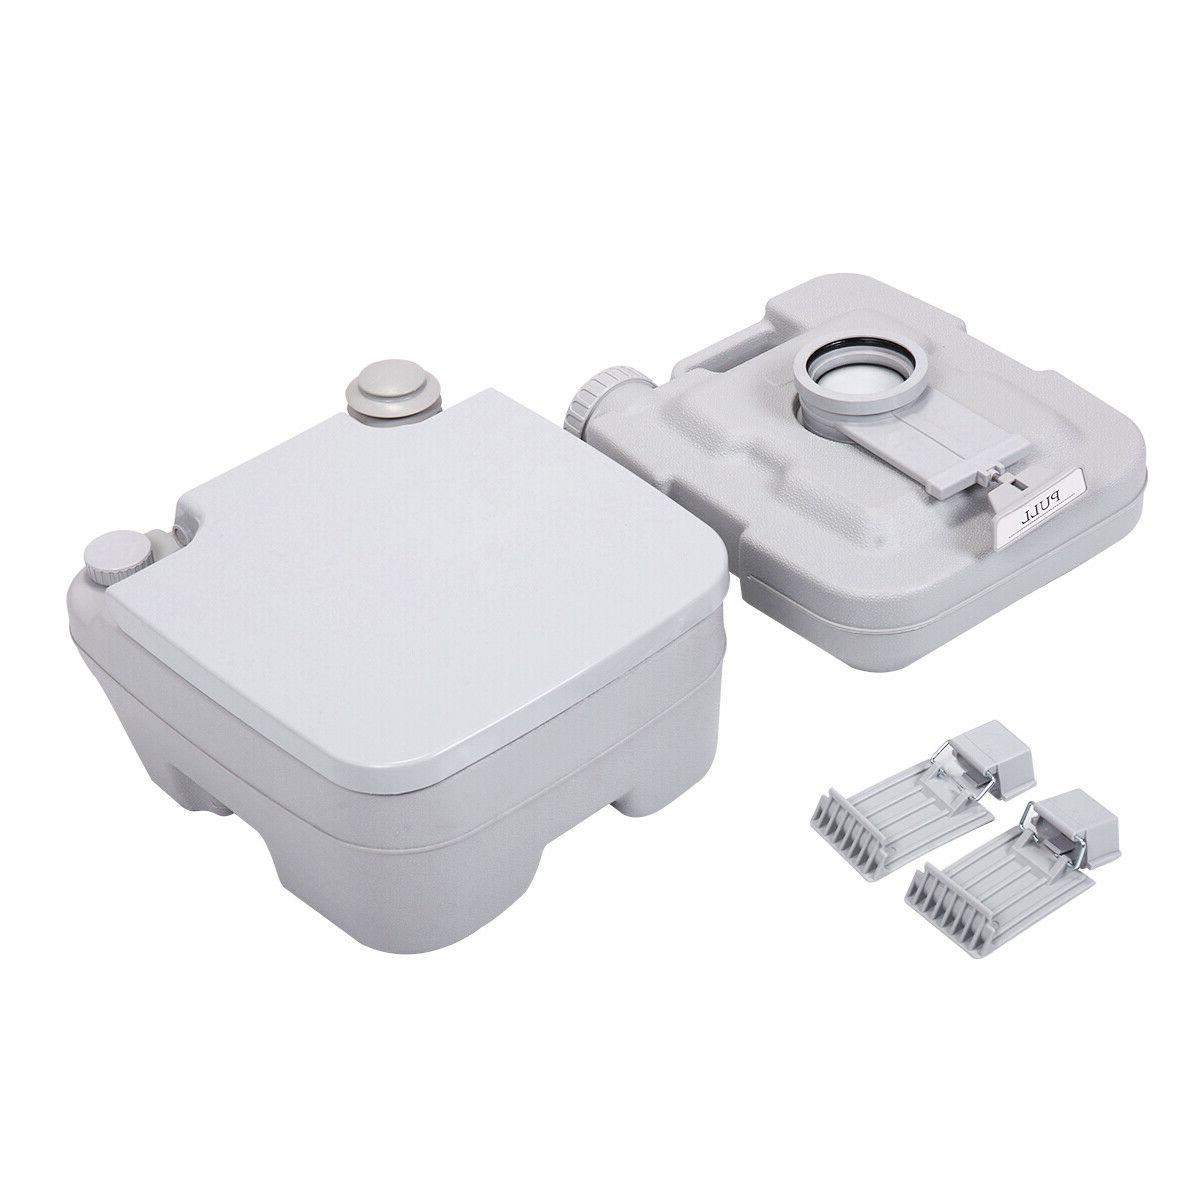 10L Portable Camping Vehicle Boat Toilet Potty